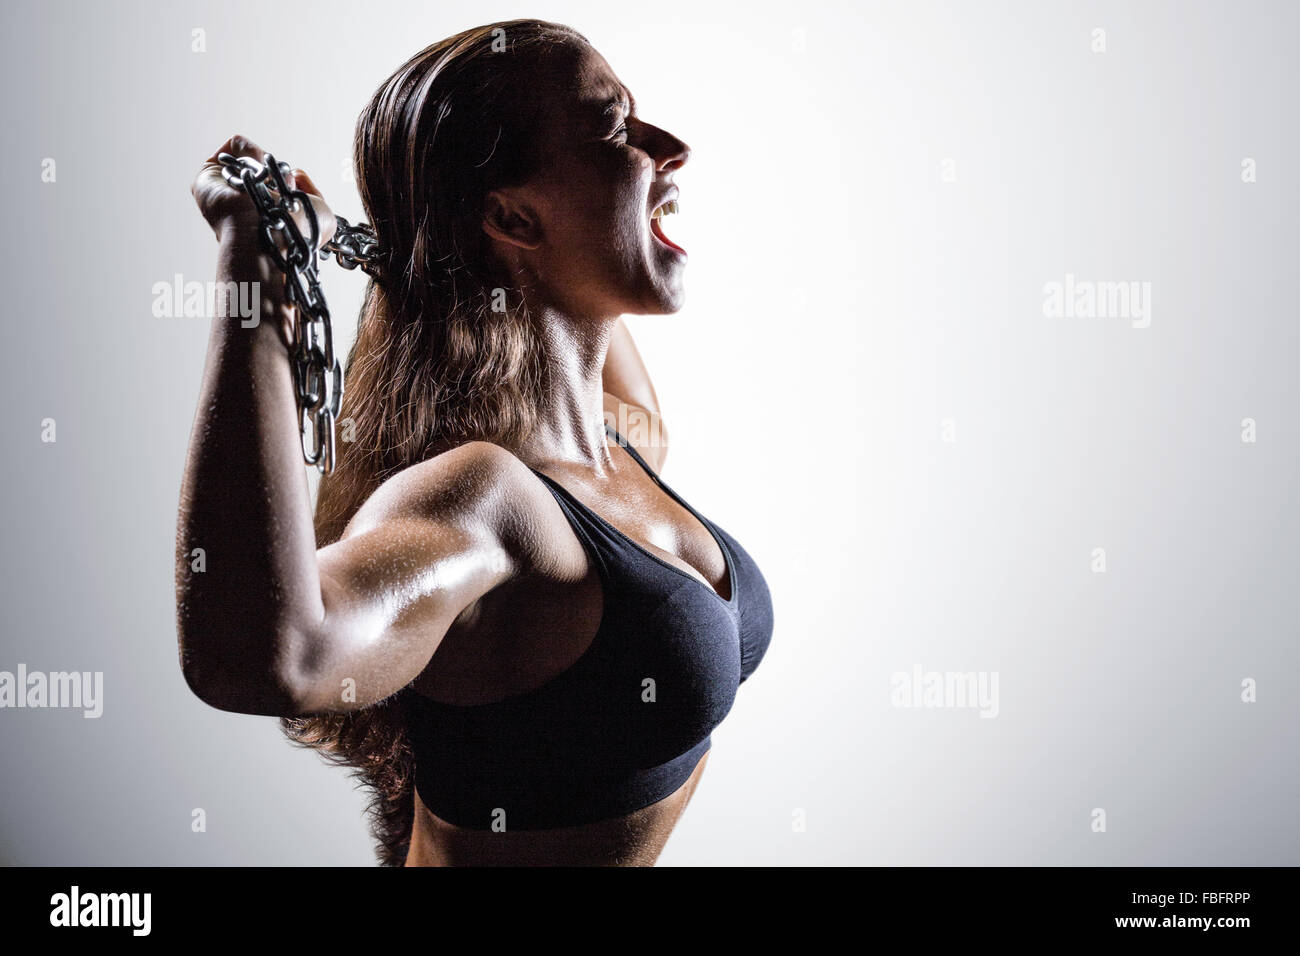 Composite image of side view of angry athlete shouting while holding chain - Stock Image